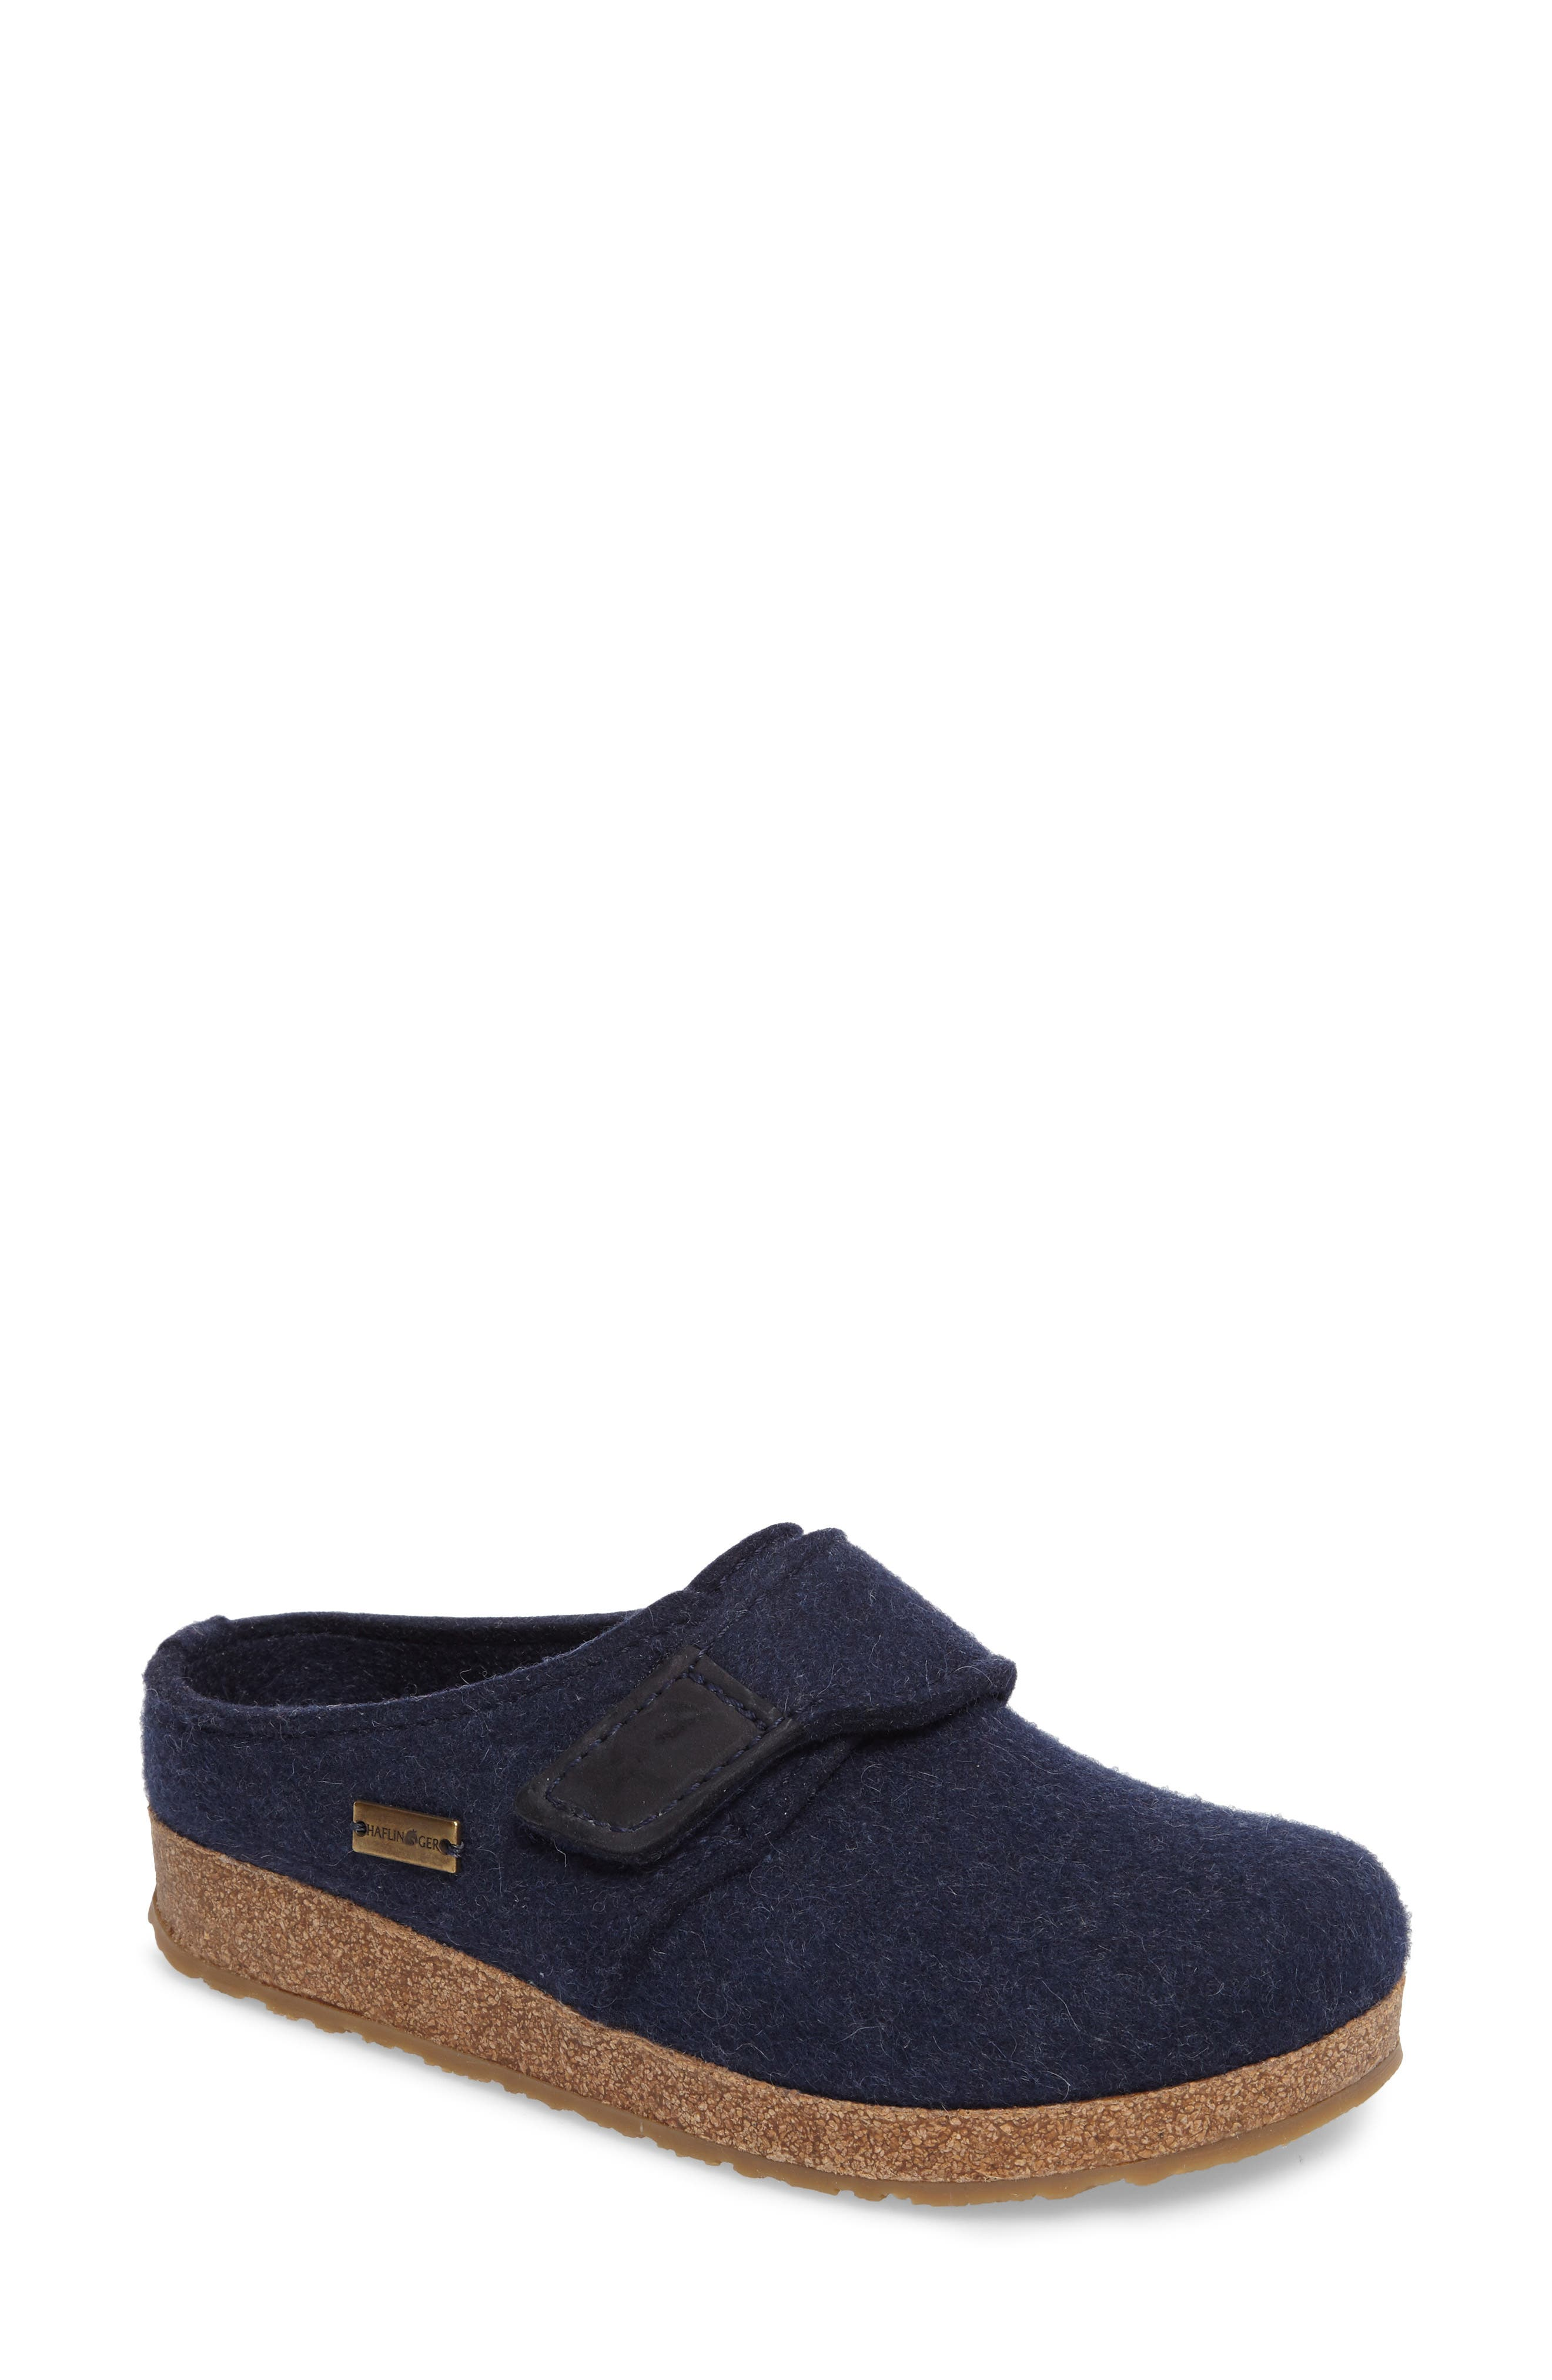 Grizzly Journey Clog Slipper,                             Main thumbnail 2, color,